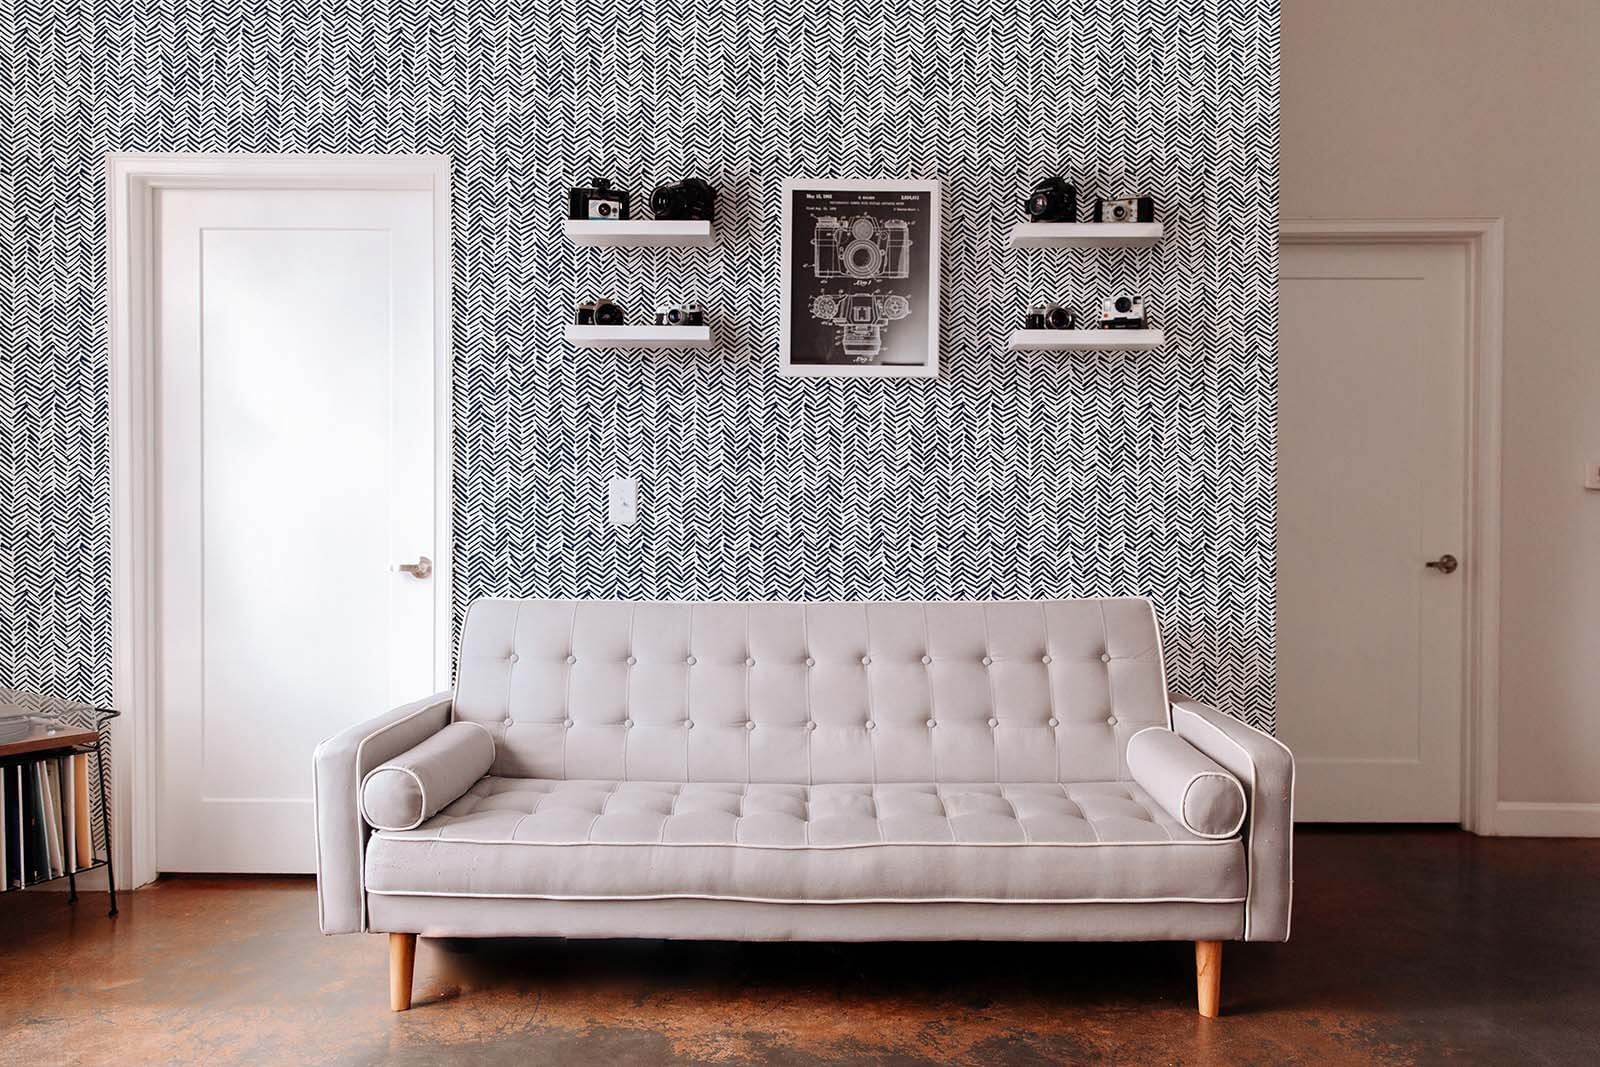 Dwell and Good wallpaper